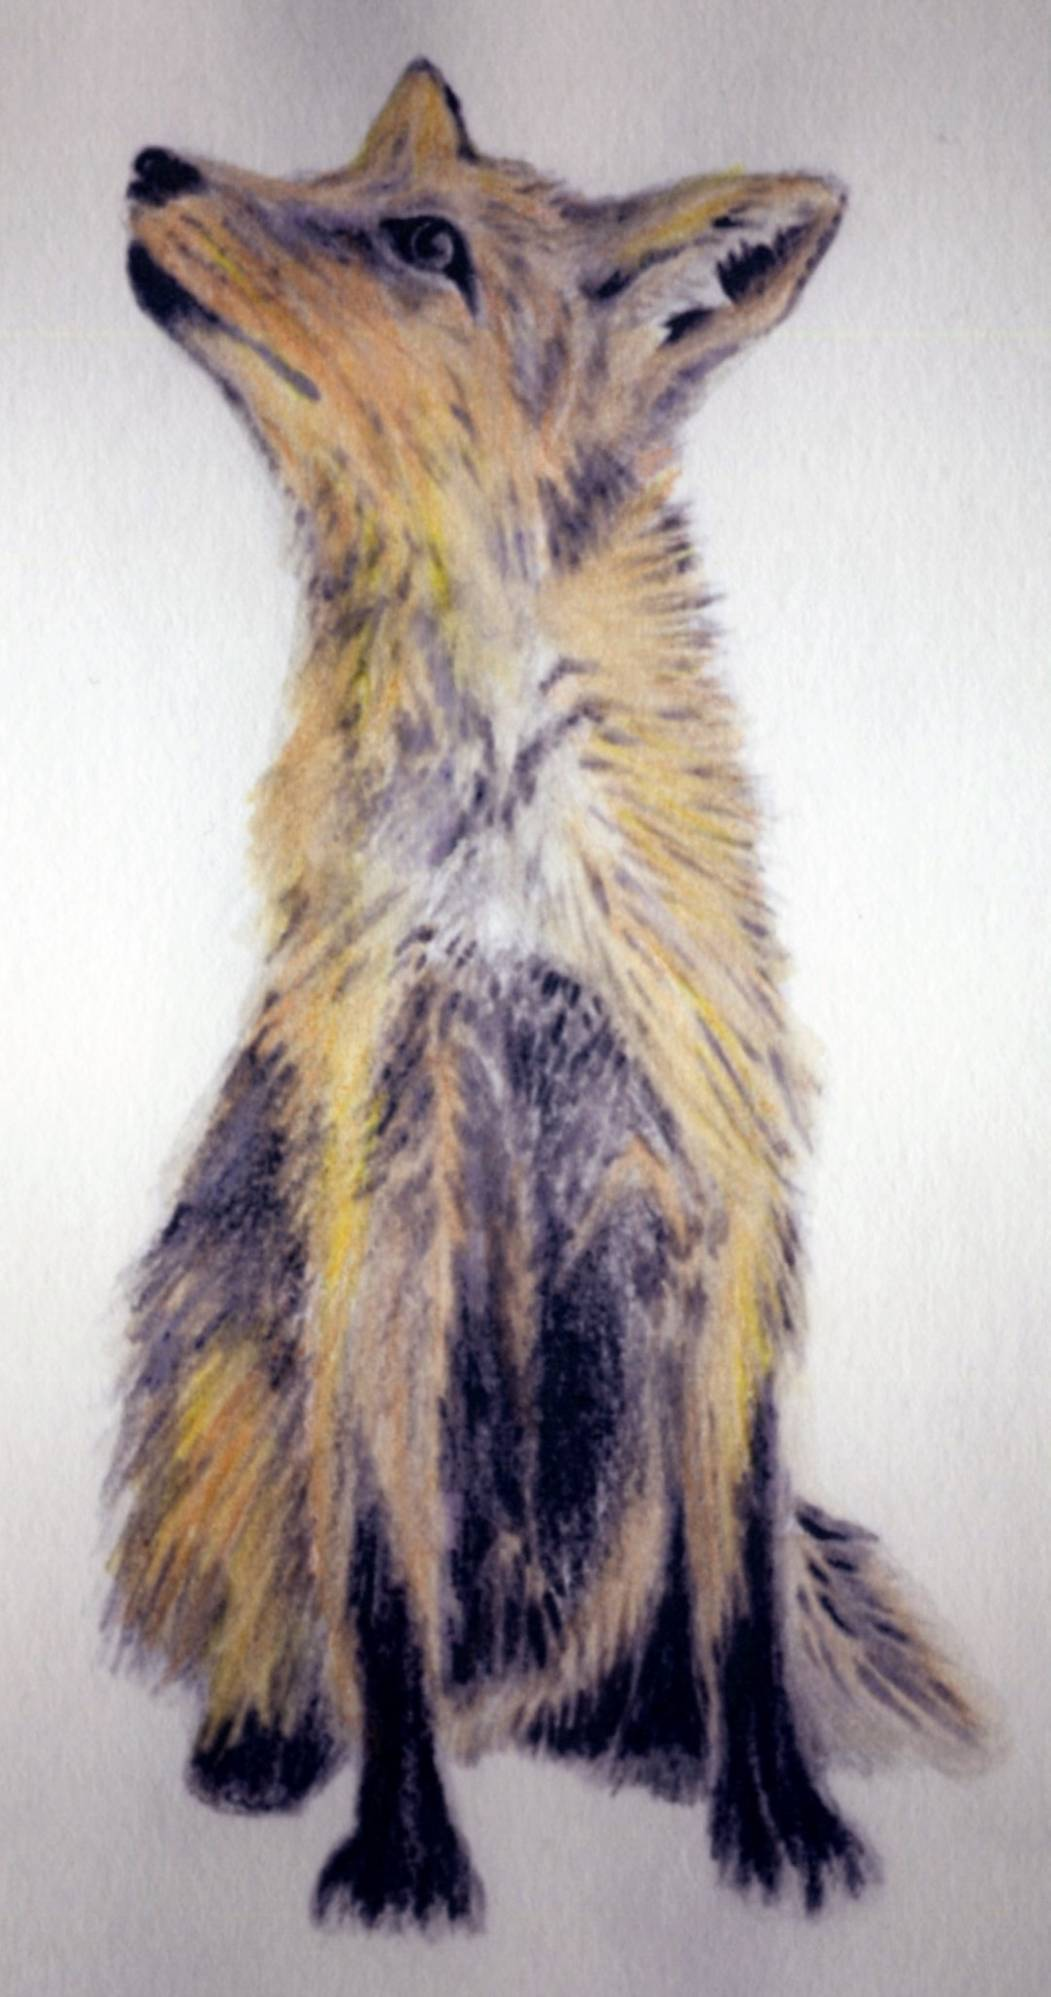 A6 coloured pencil sketches 5.8 x 4.1 Inches